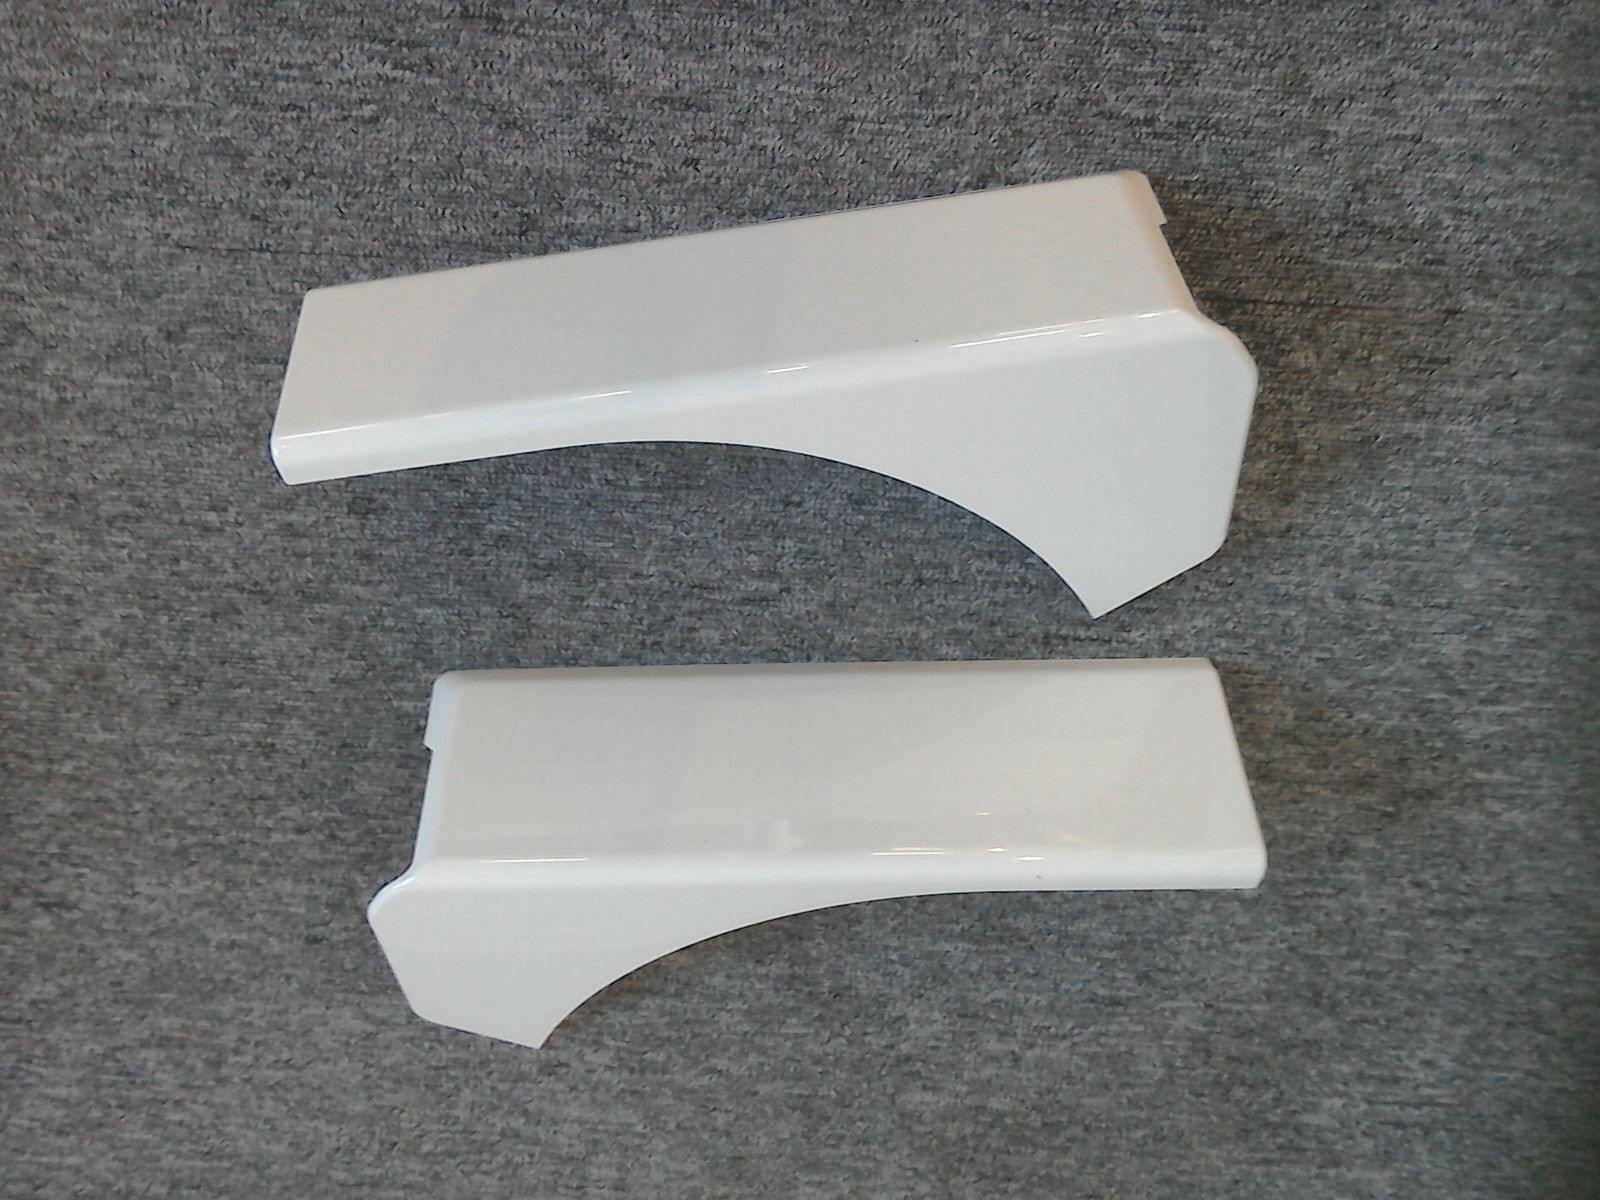 Swift Sterling Elddis Compass Caravan White Top Corner Covers Rear Fuse Box 1 Of 6free Shipping